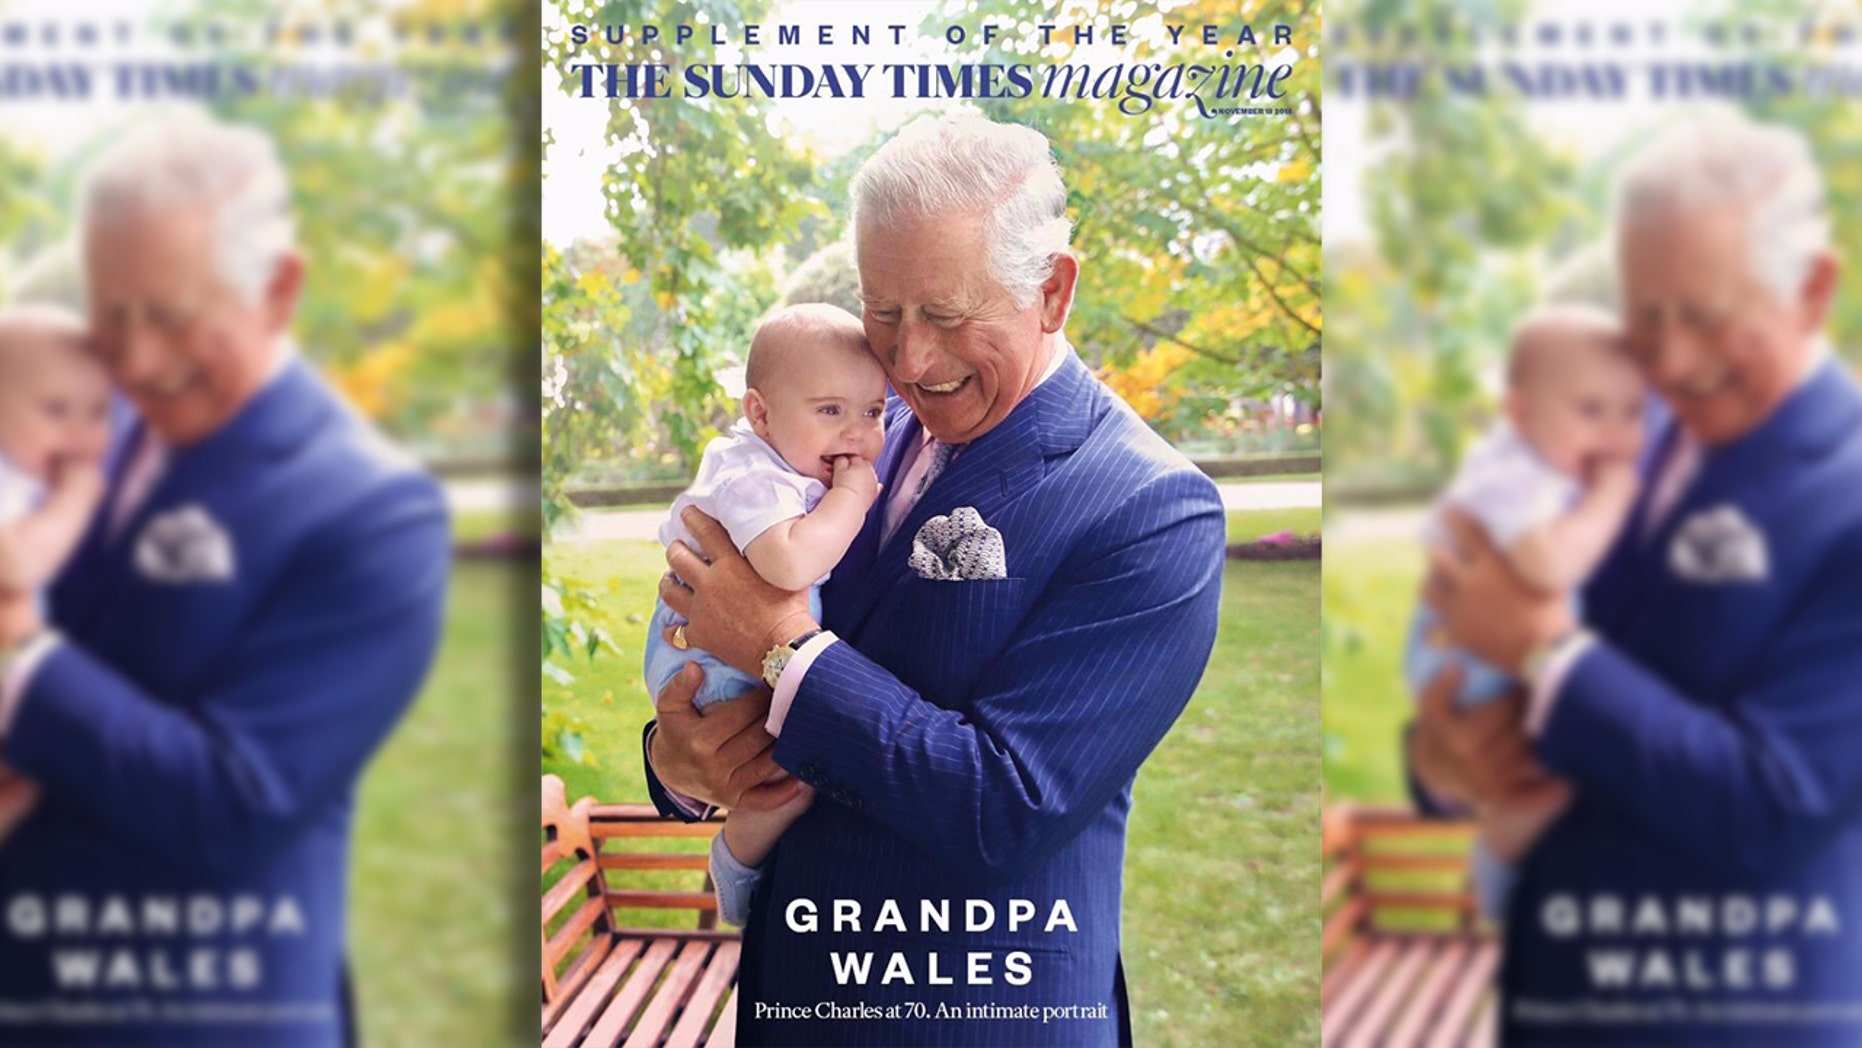 Prince Charles is seen as a hands-on grandfather in adorable new photos with Prince Louis.